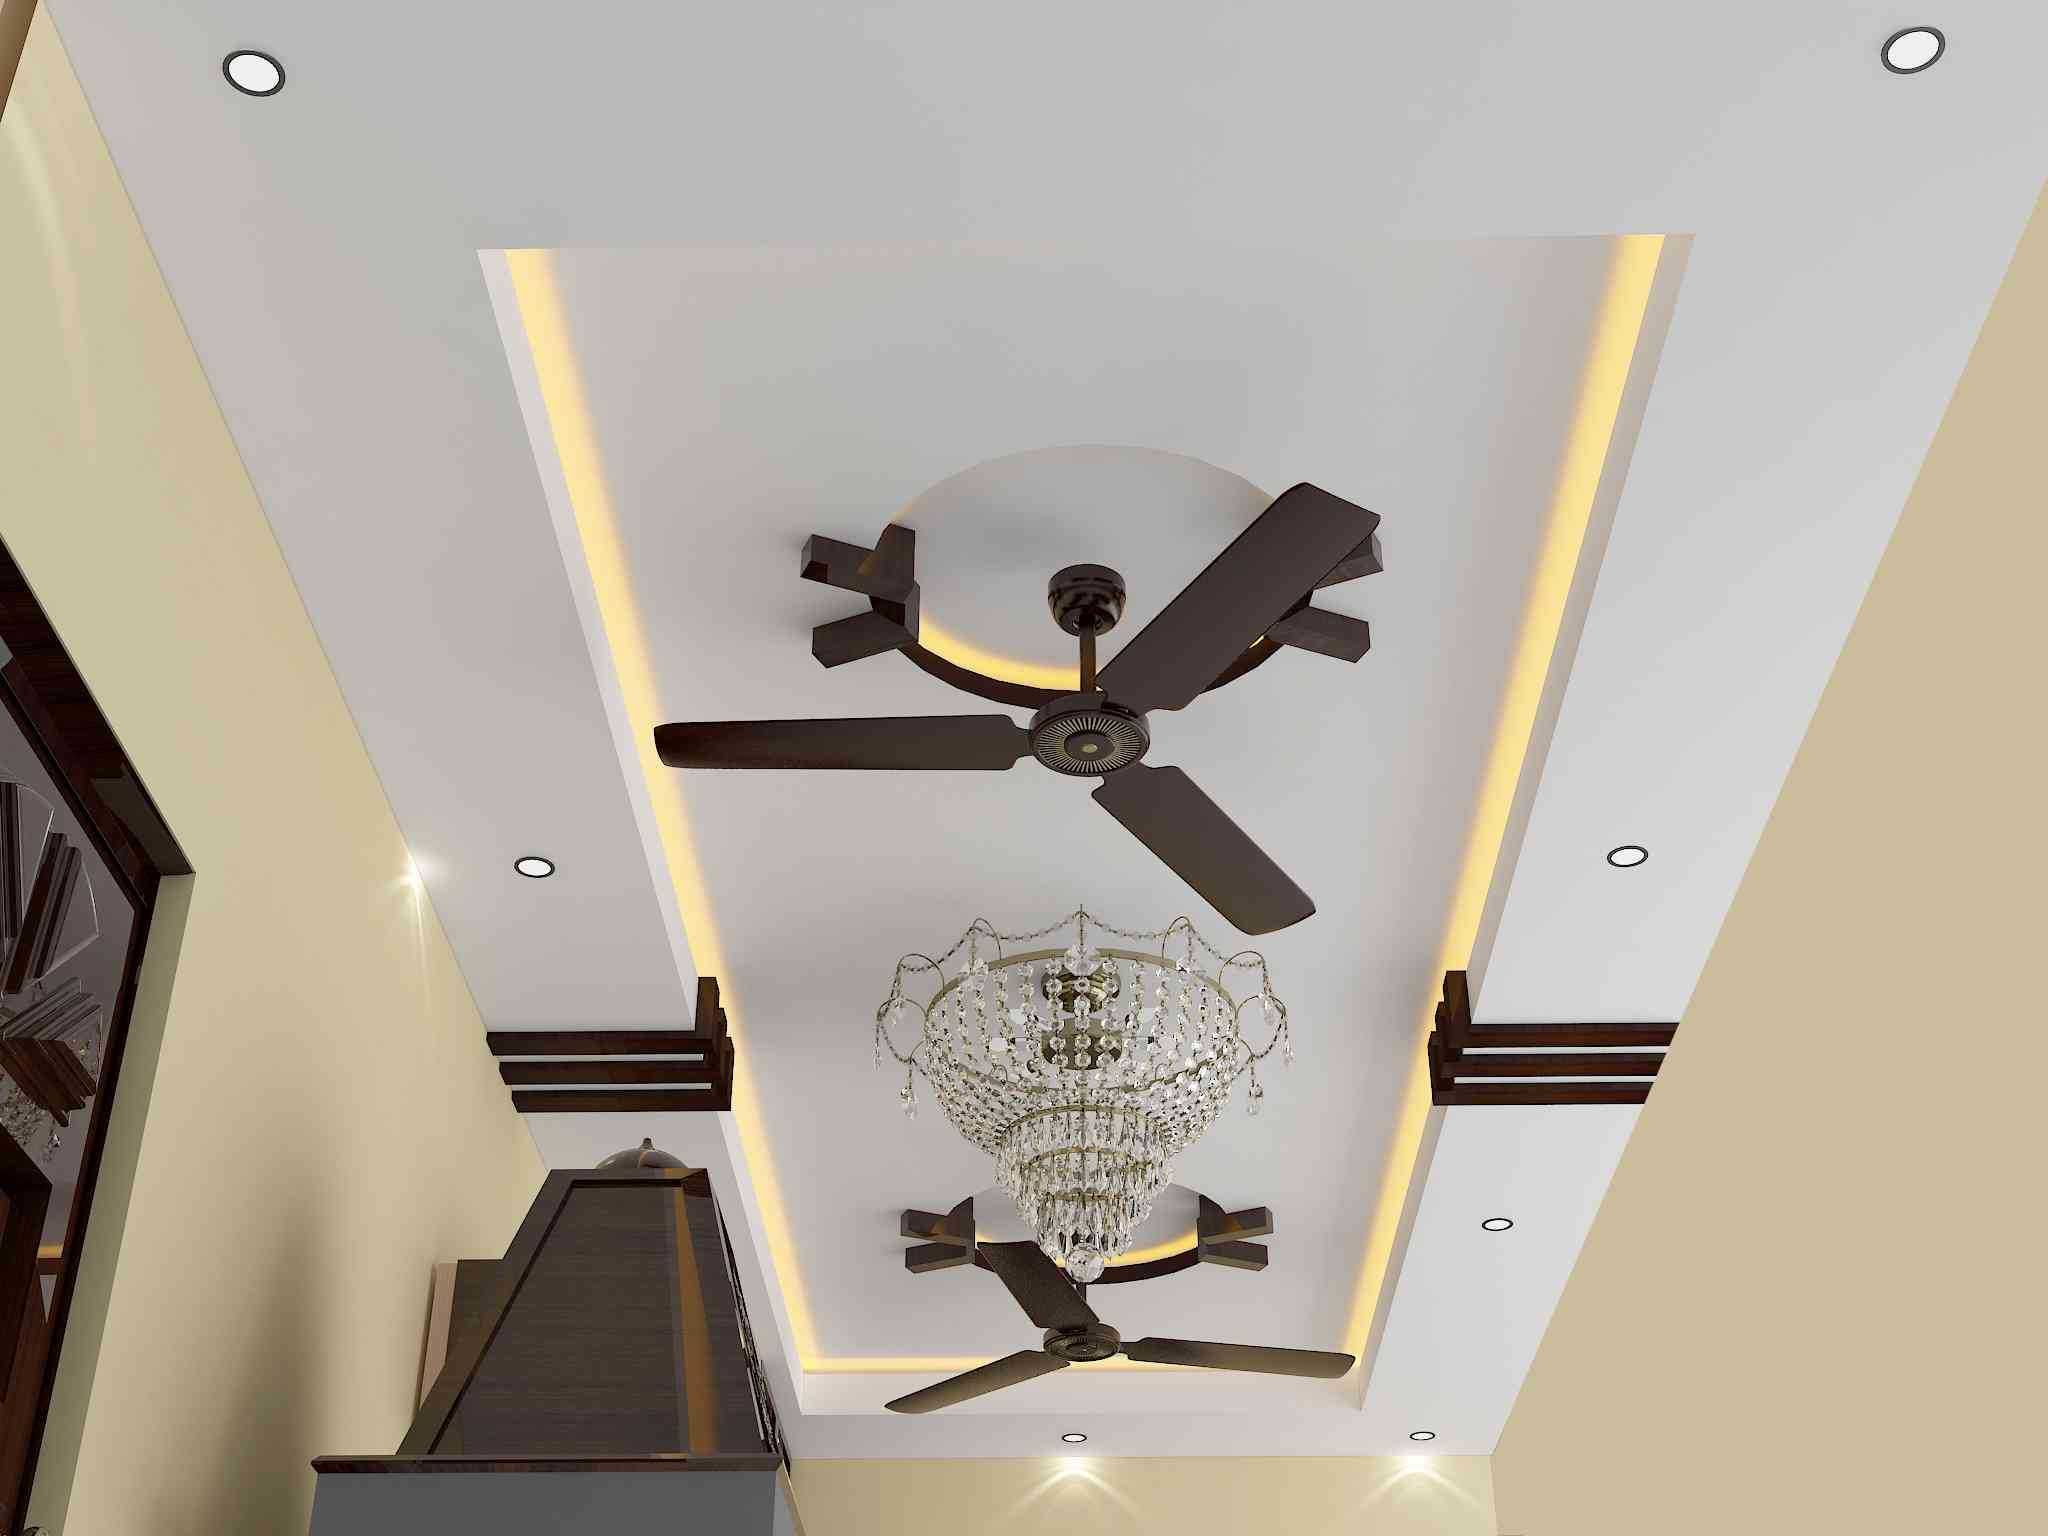 Pop Ceiling Design For Hall With 2 Fans - Wallpaperall ...